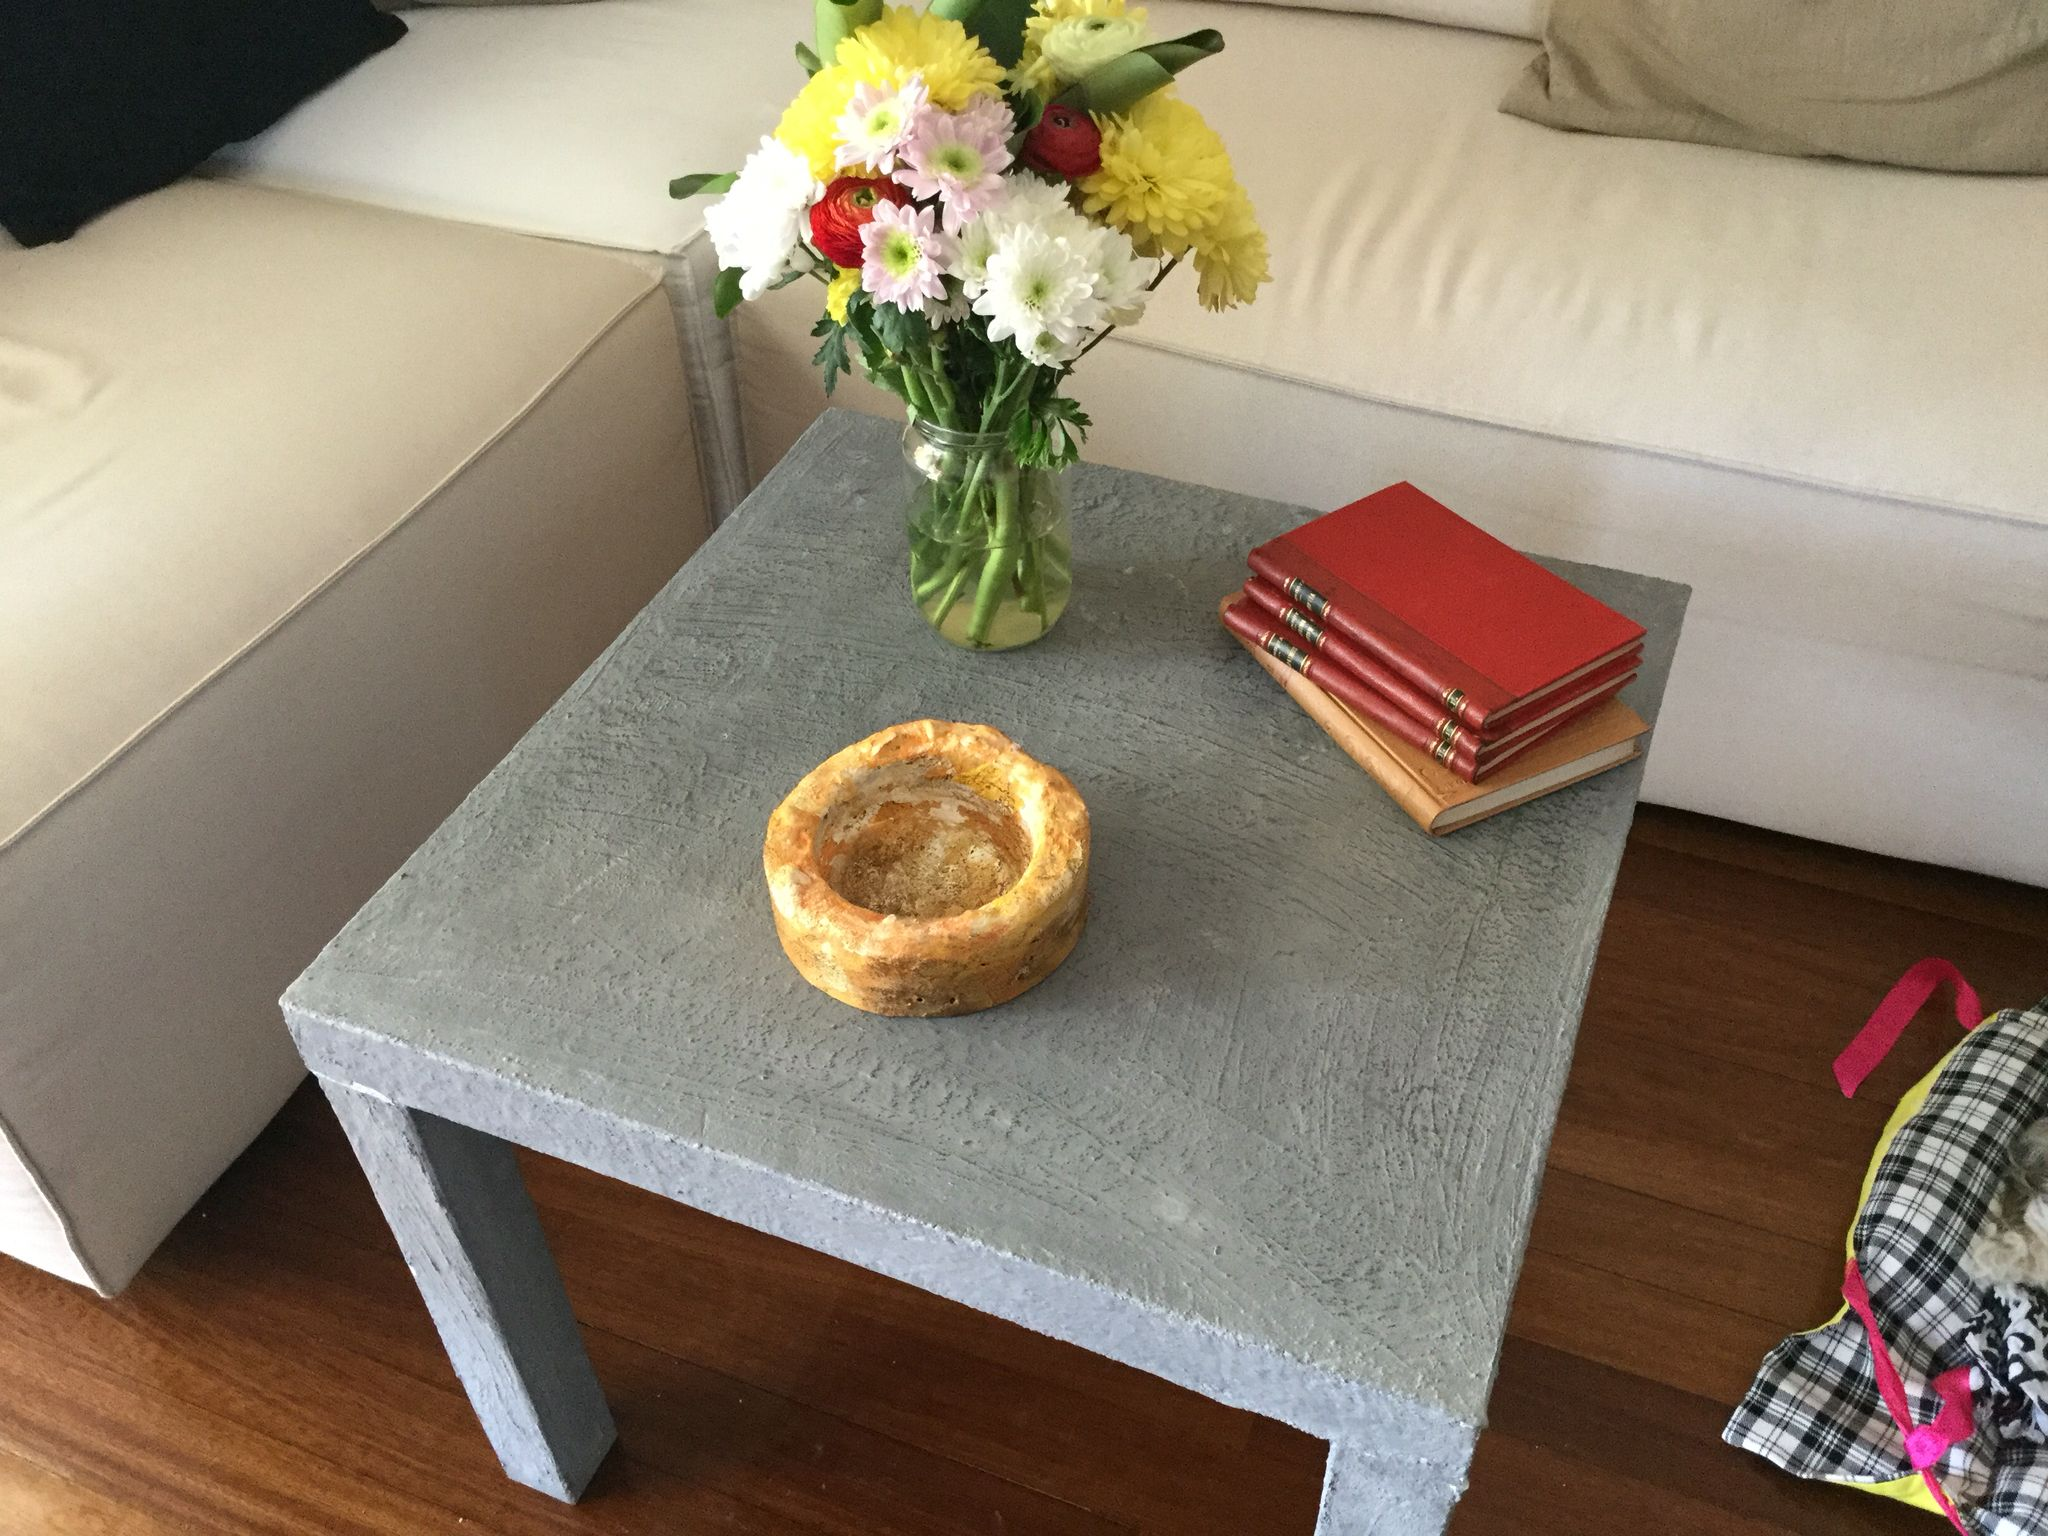 Ikea lack table with a thin layer of concrete for a complete